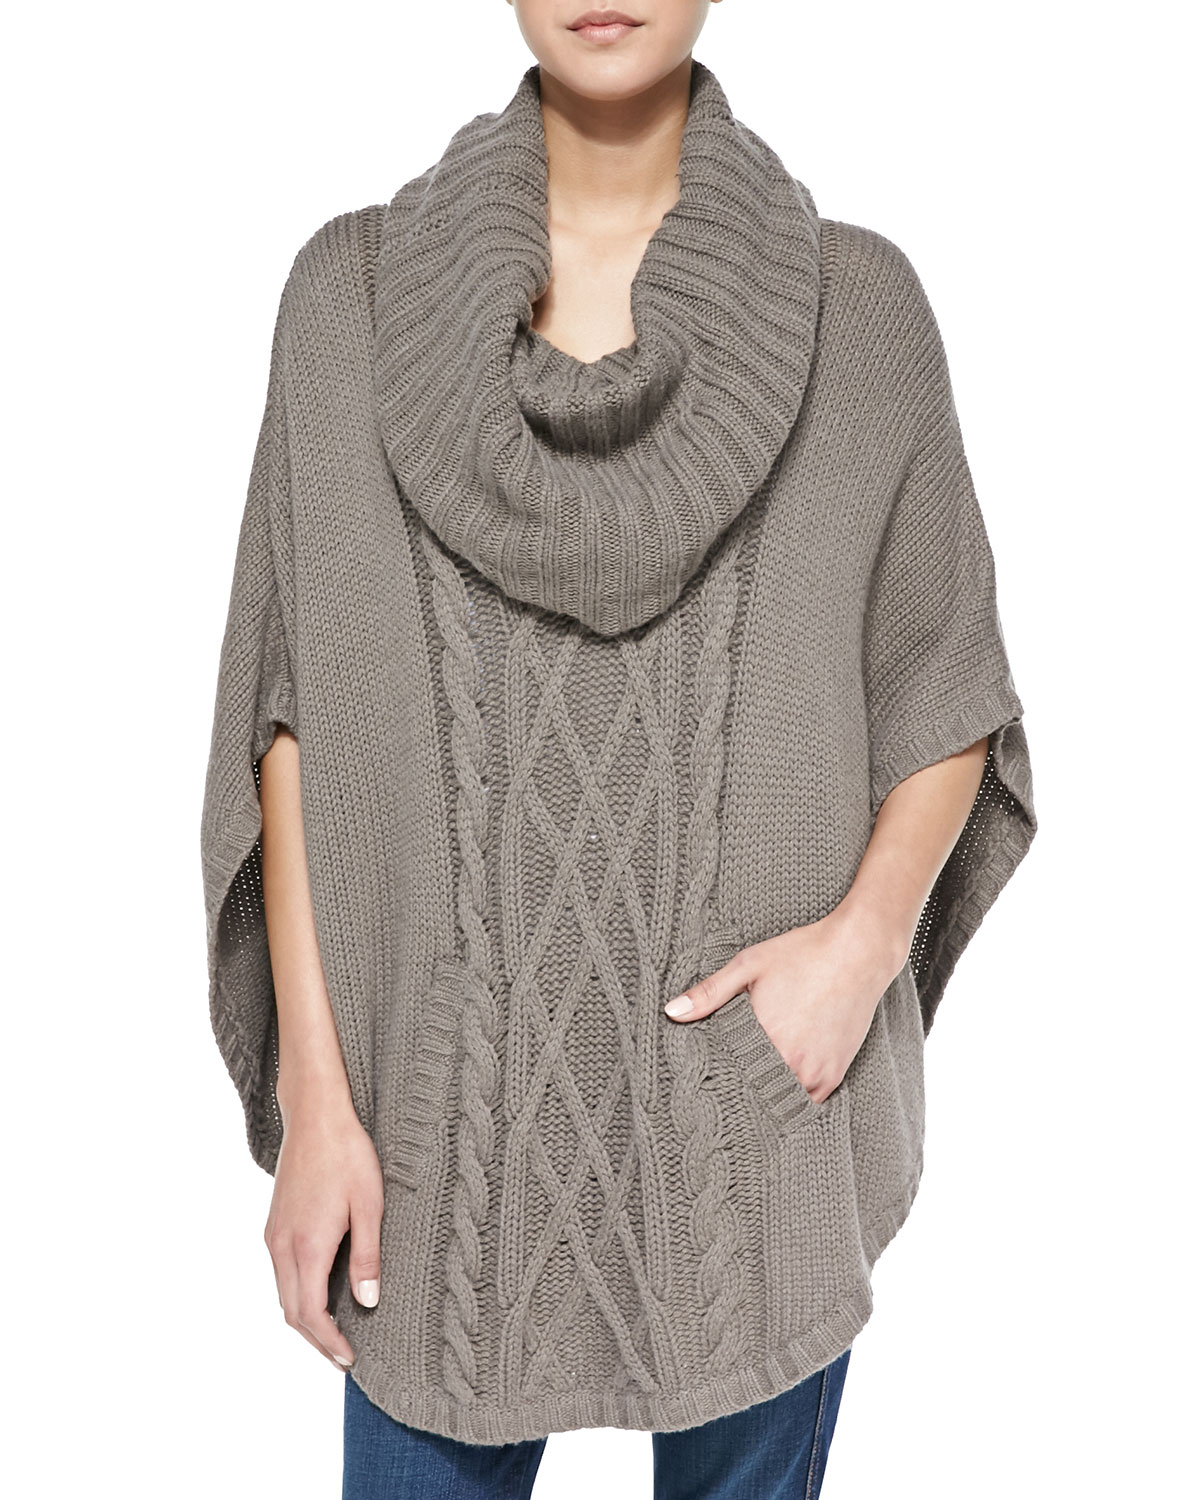 Autumn cashmere Cable-knit Cowl-neck Cashmere Poncho in Gray | Lyst